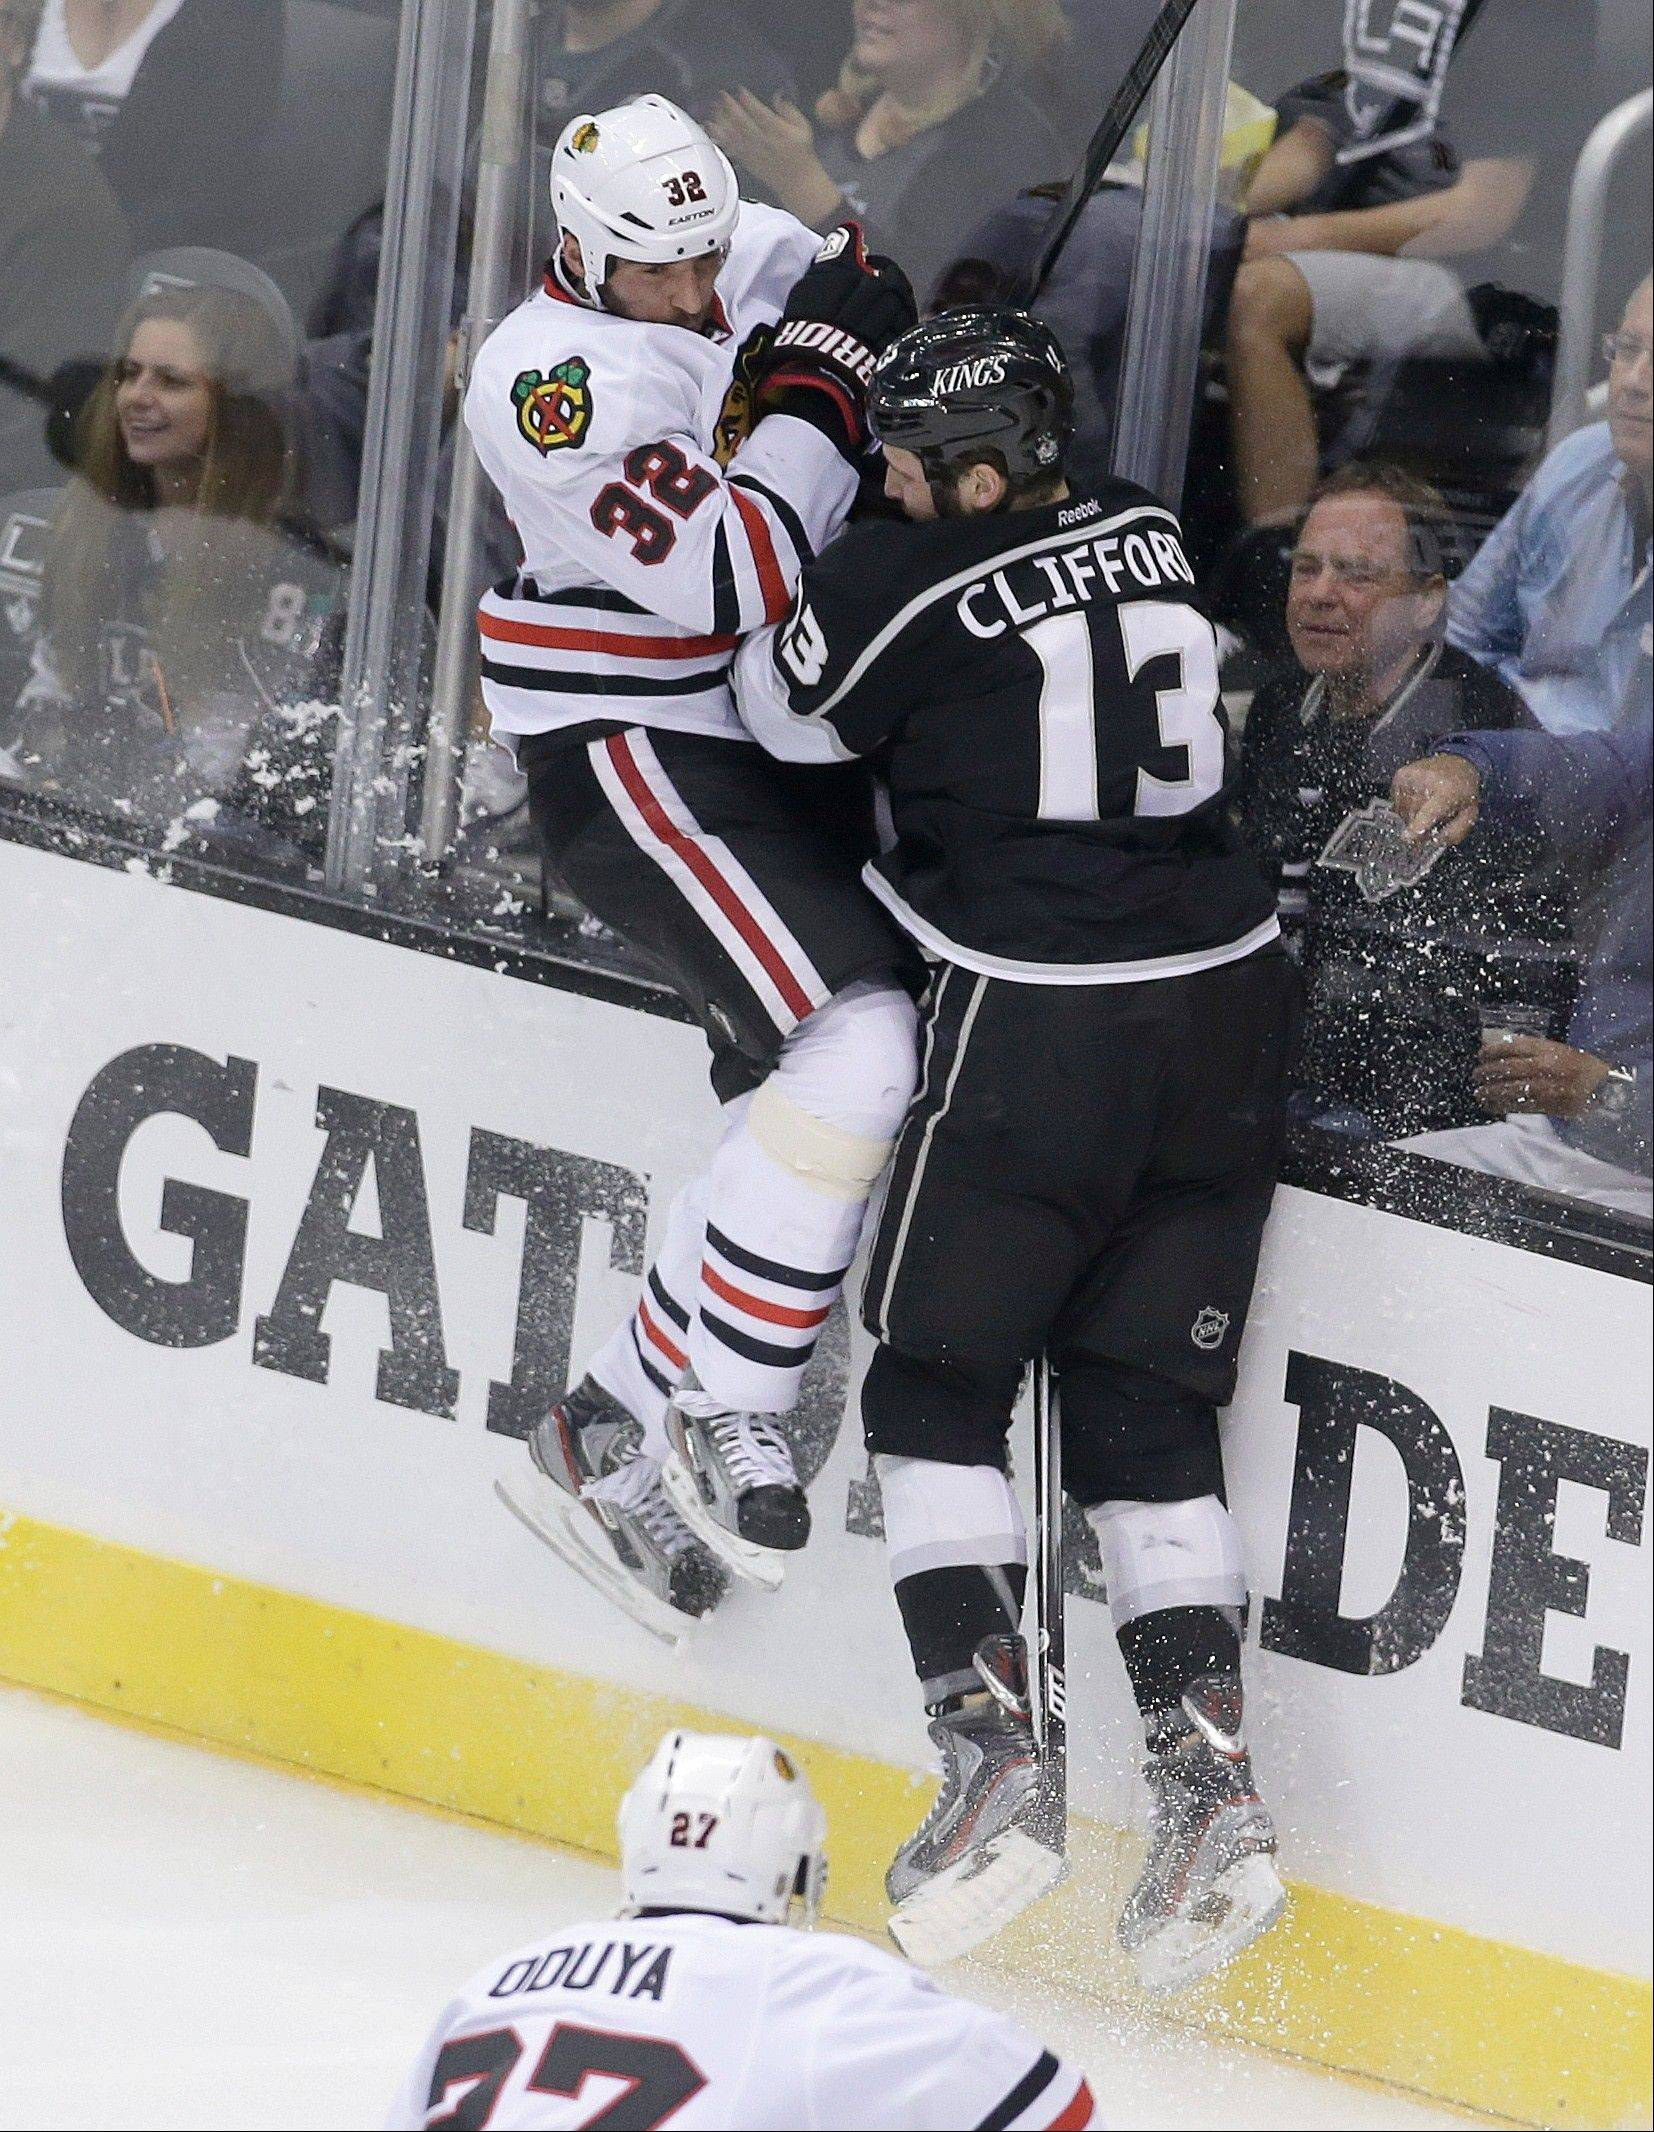 Los Angeles Kings left wing Kyle Clifford, right, checks Chicago Blackhawks defenseman Michal Rozsival during the first period in Game 4 of the NHL hockey Stanley Cup Western Conference finals, in Los Angeles on Thursday, June 6, 2013.